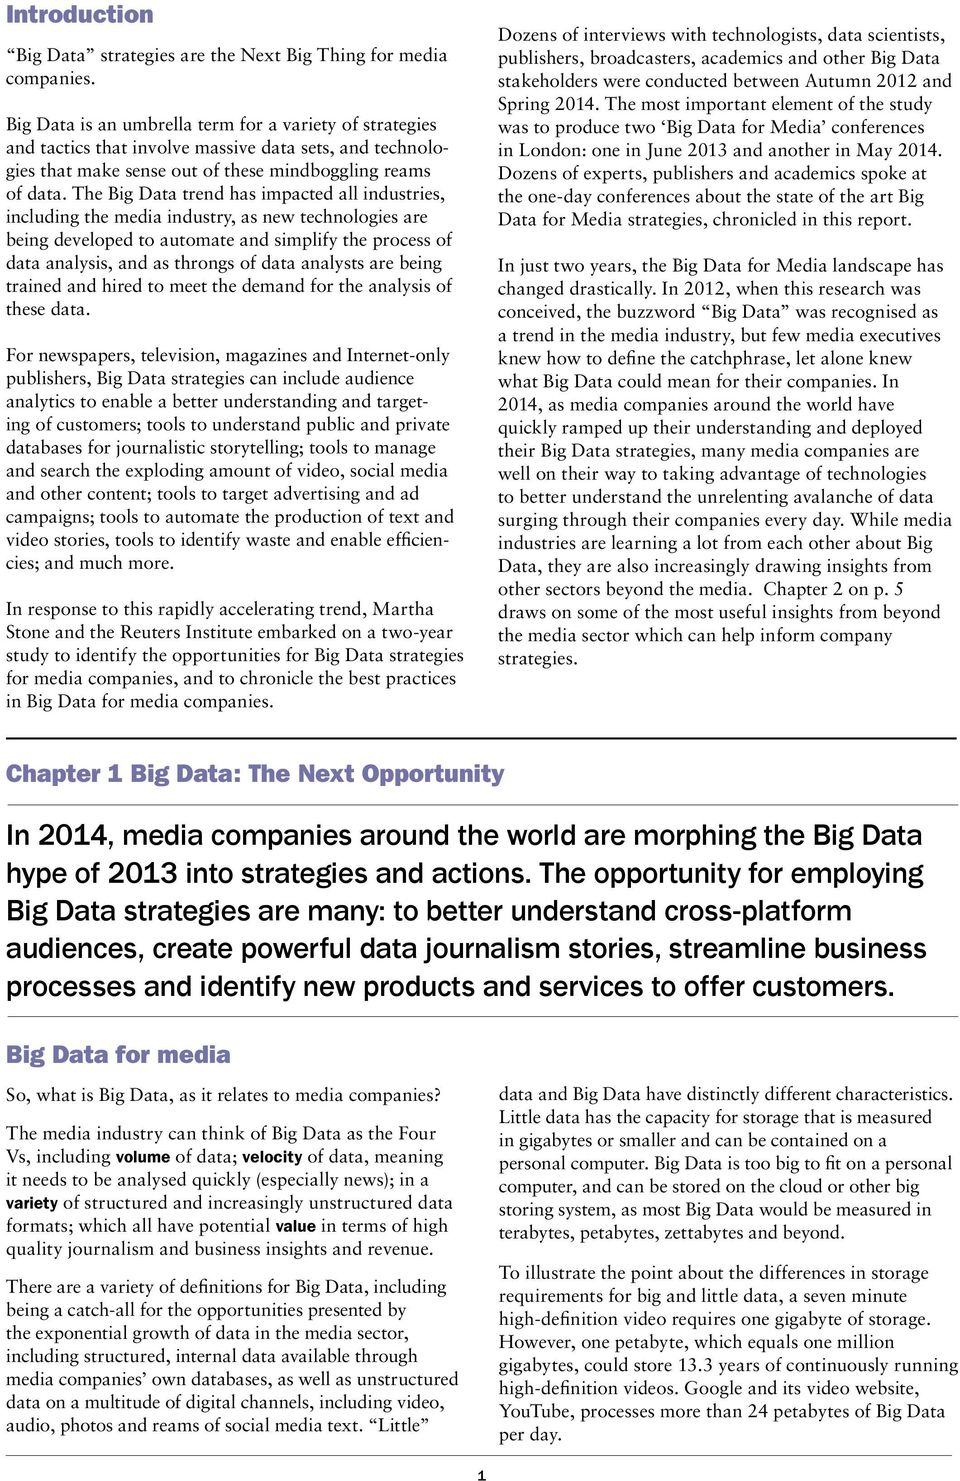 The Big Data trend has impacted all industries, including the media industry, as new technologies are being developed to automate and simplify the process of data analysis, and as throngs of data